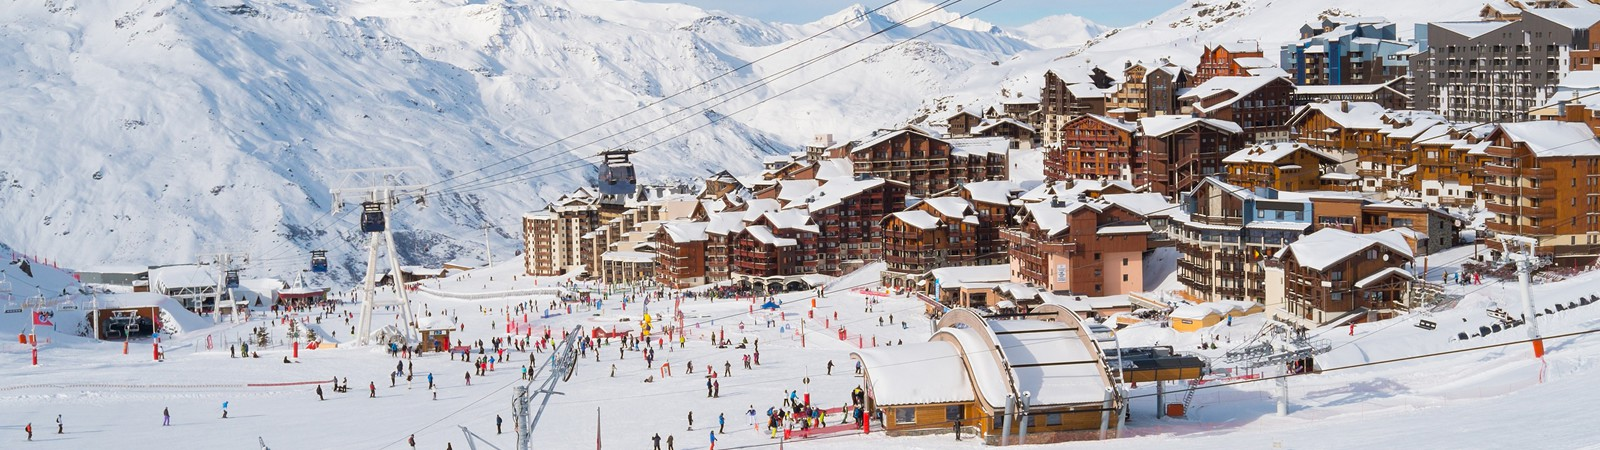 Val Thorens resort